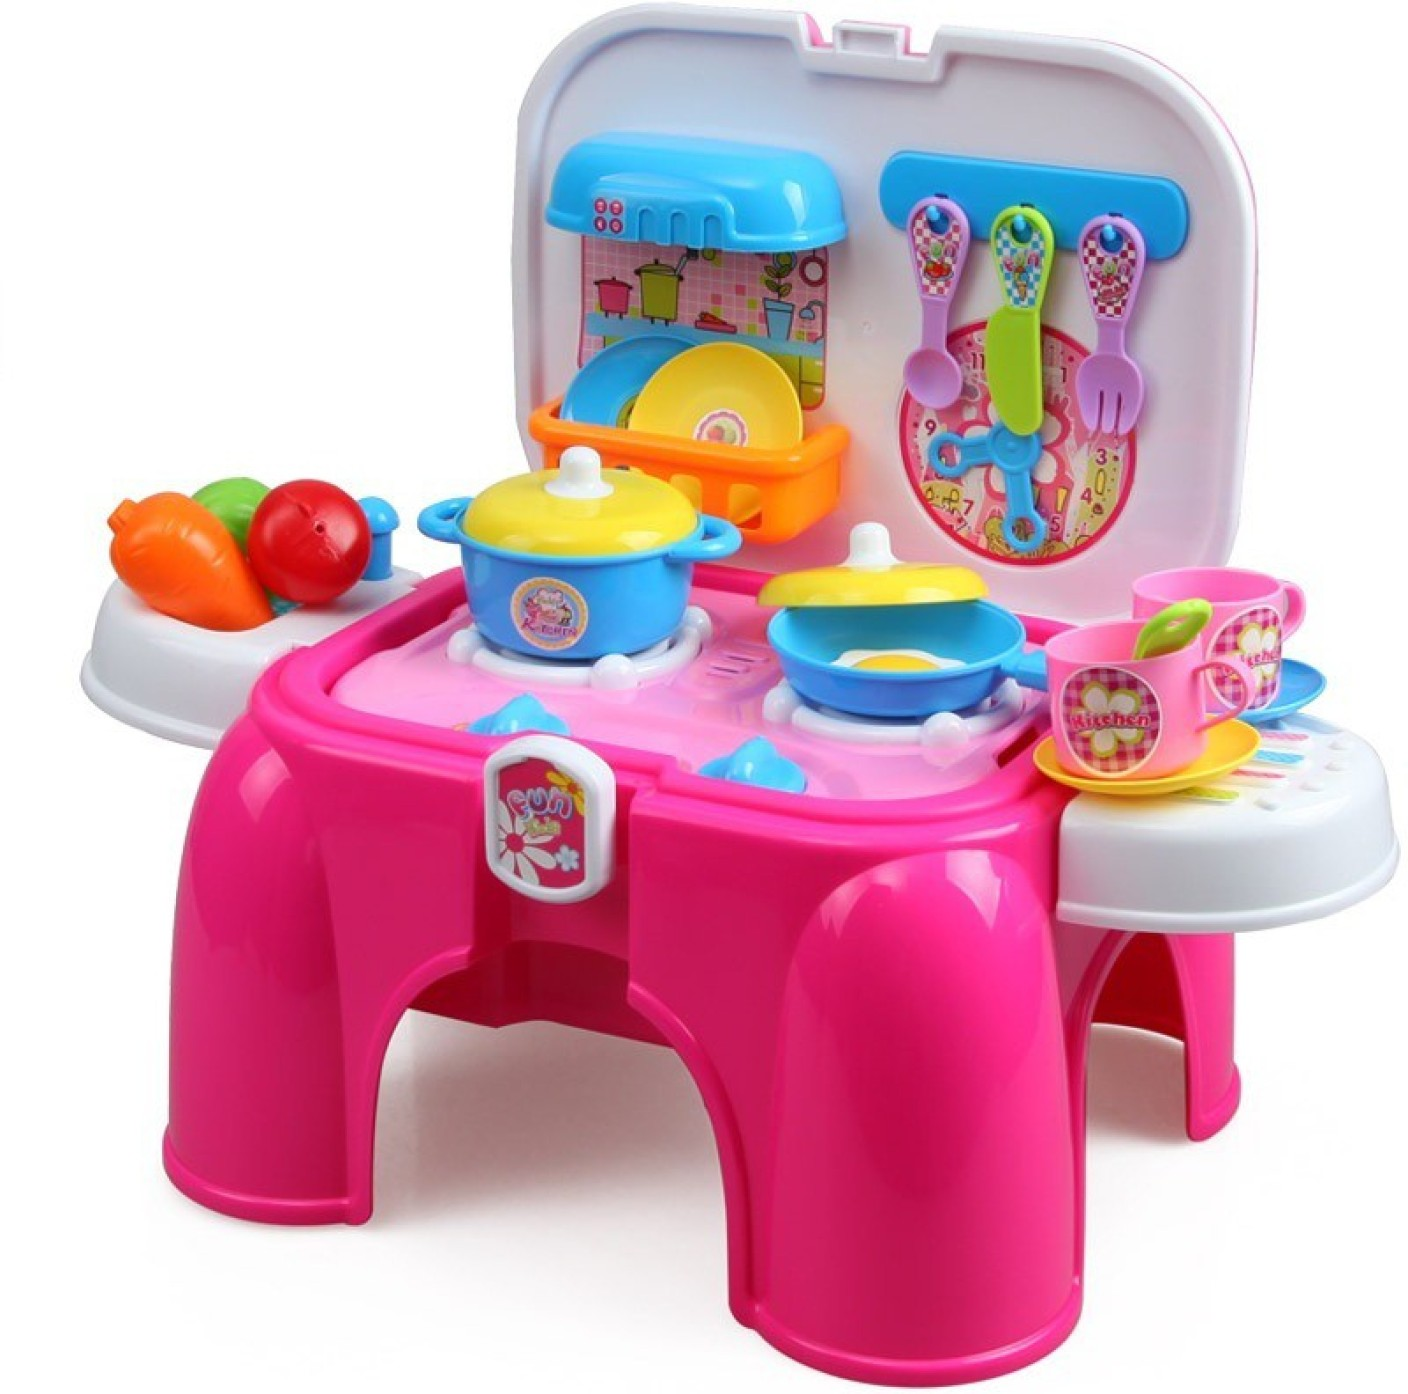 xiong cheng  in  portable kitchen set with light and sound    - add to cart